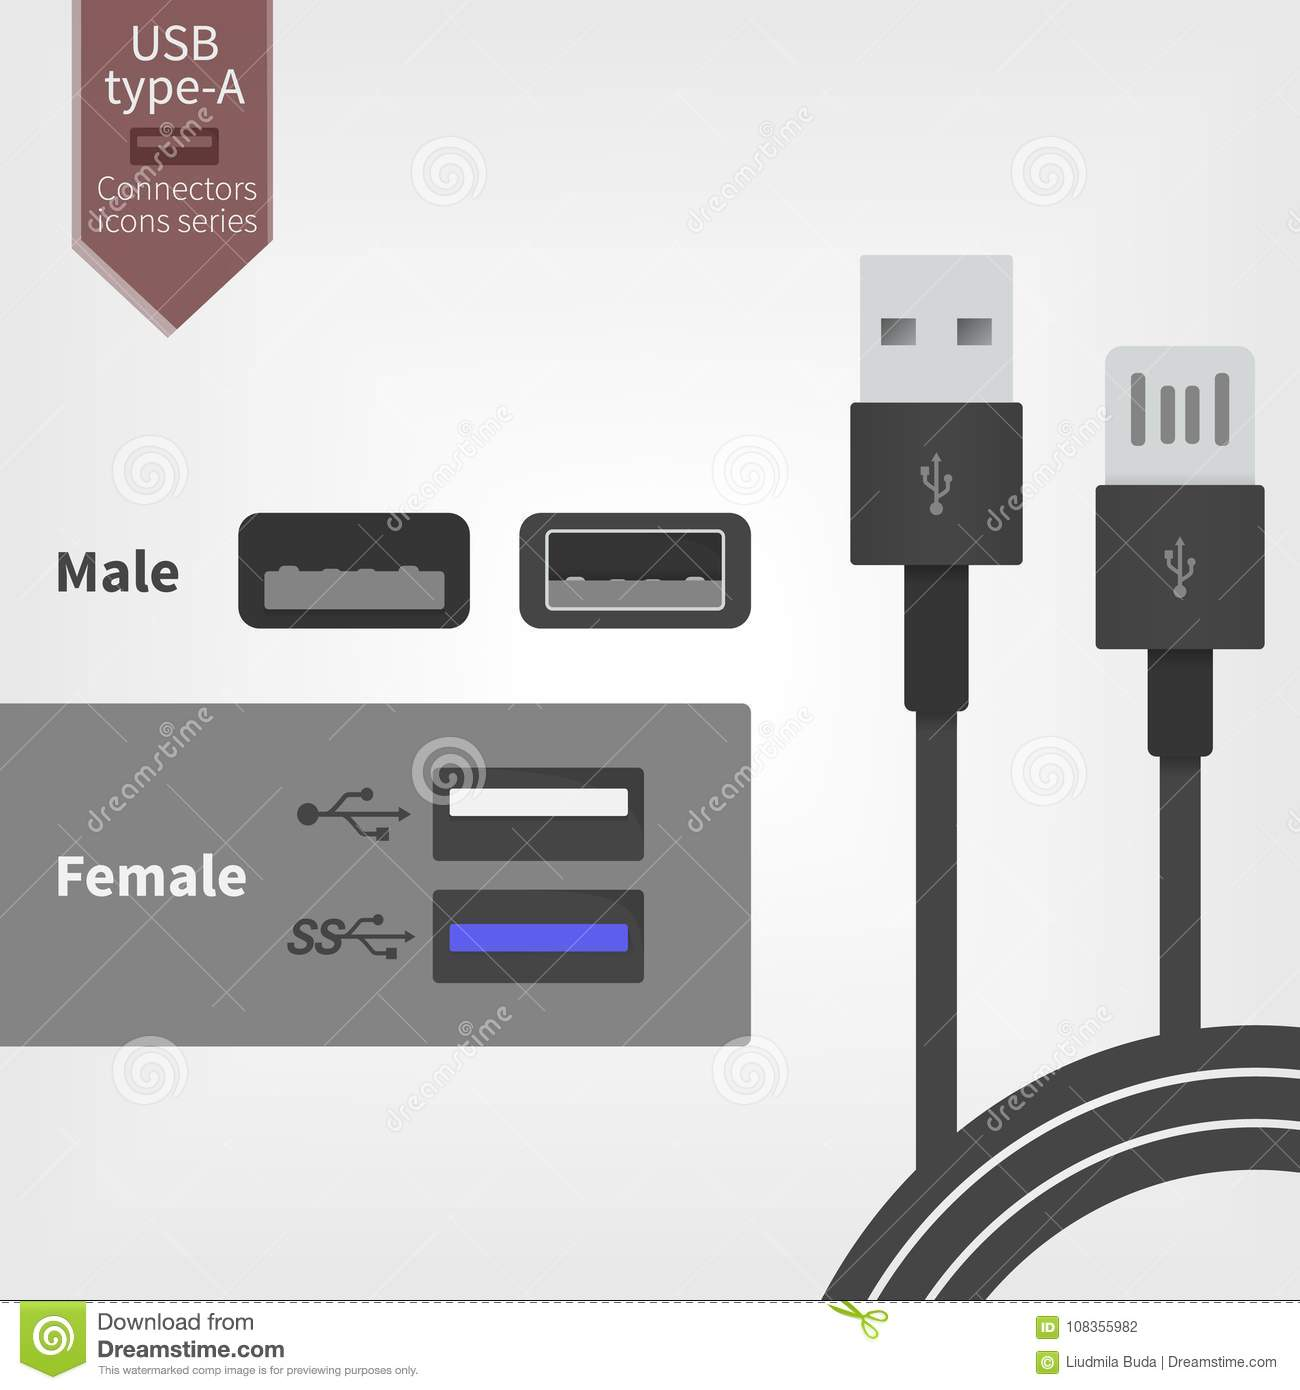 Miraculous Usb Socket Outlet And Connector Wires Vector Illustration In Flat Wiring 101 Akebretraxxcnl